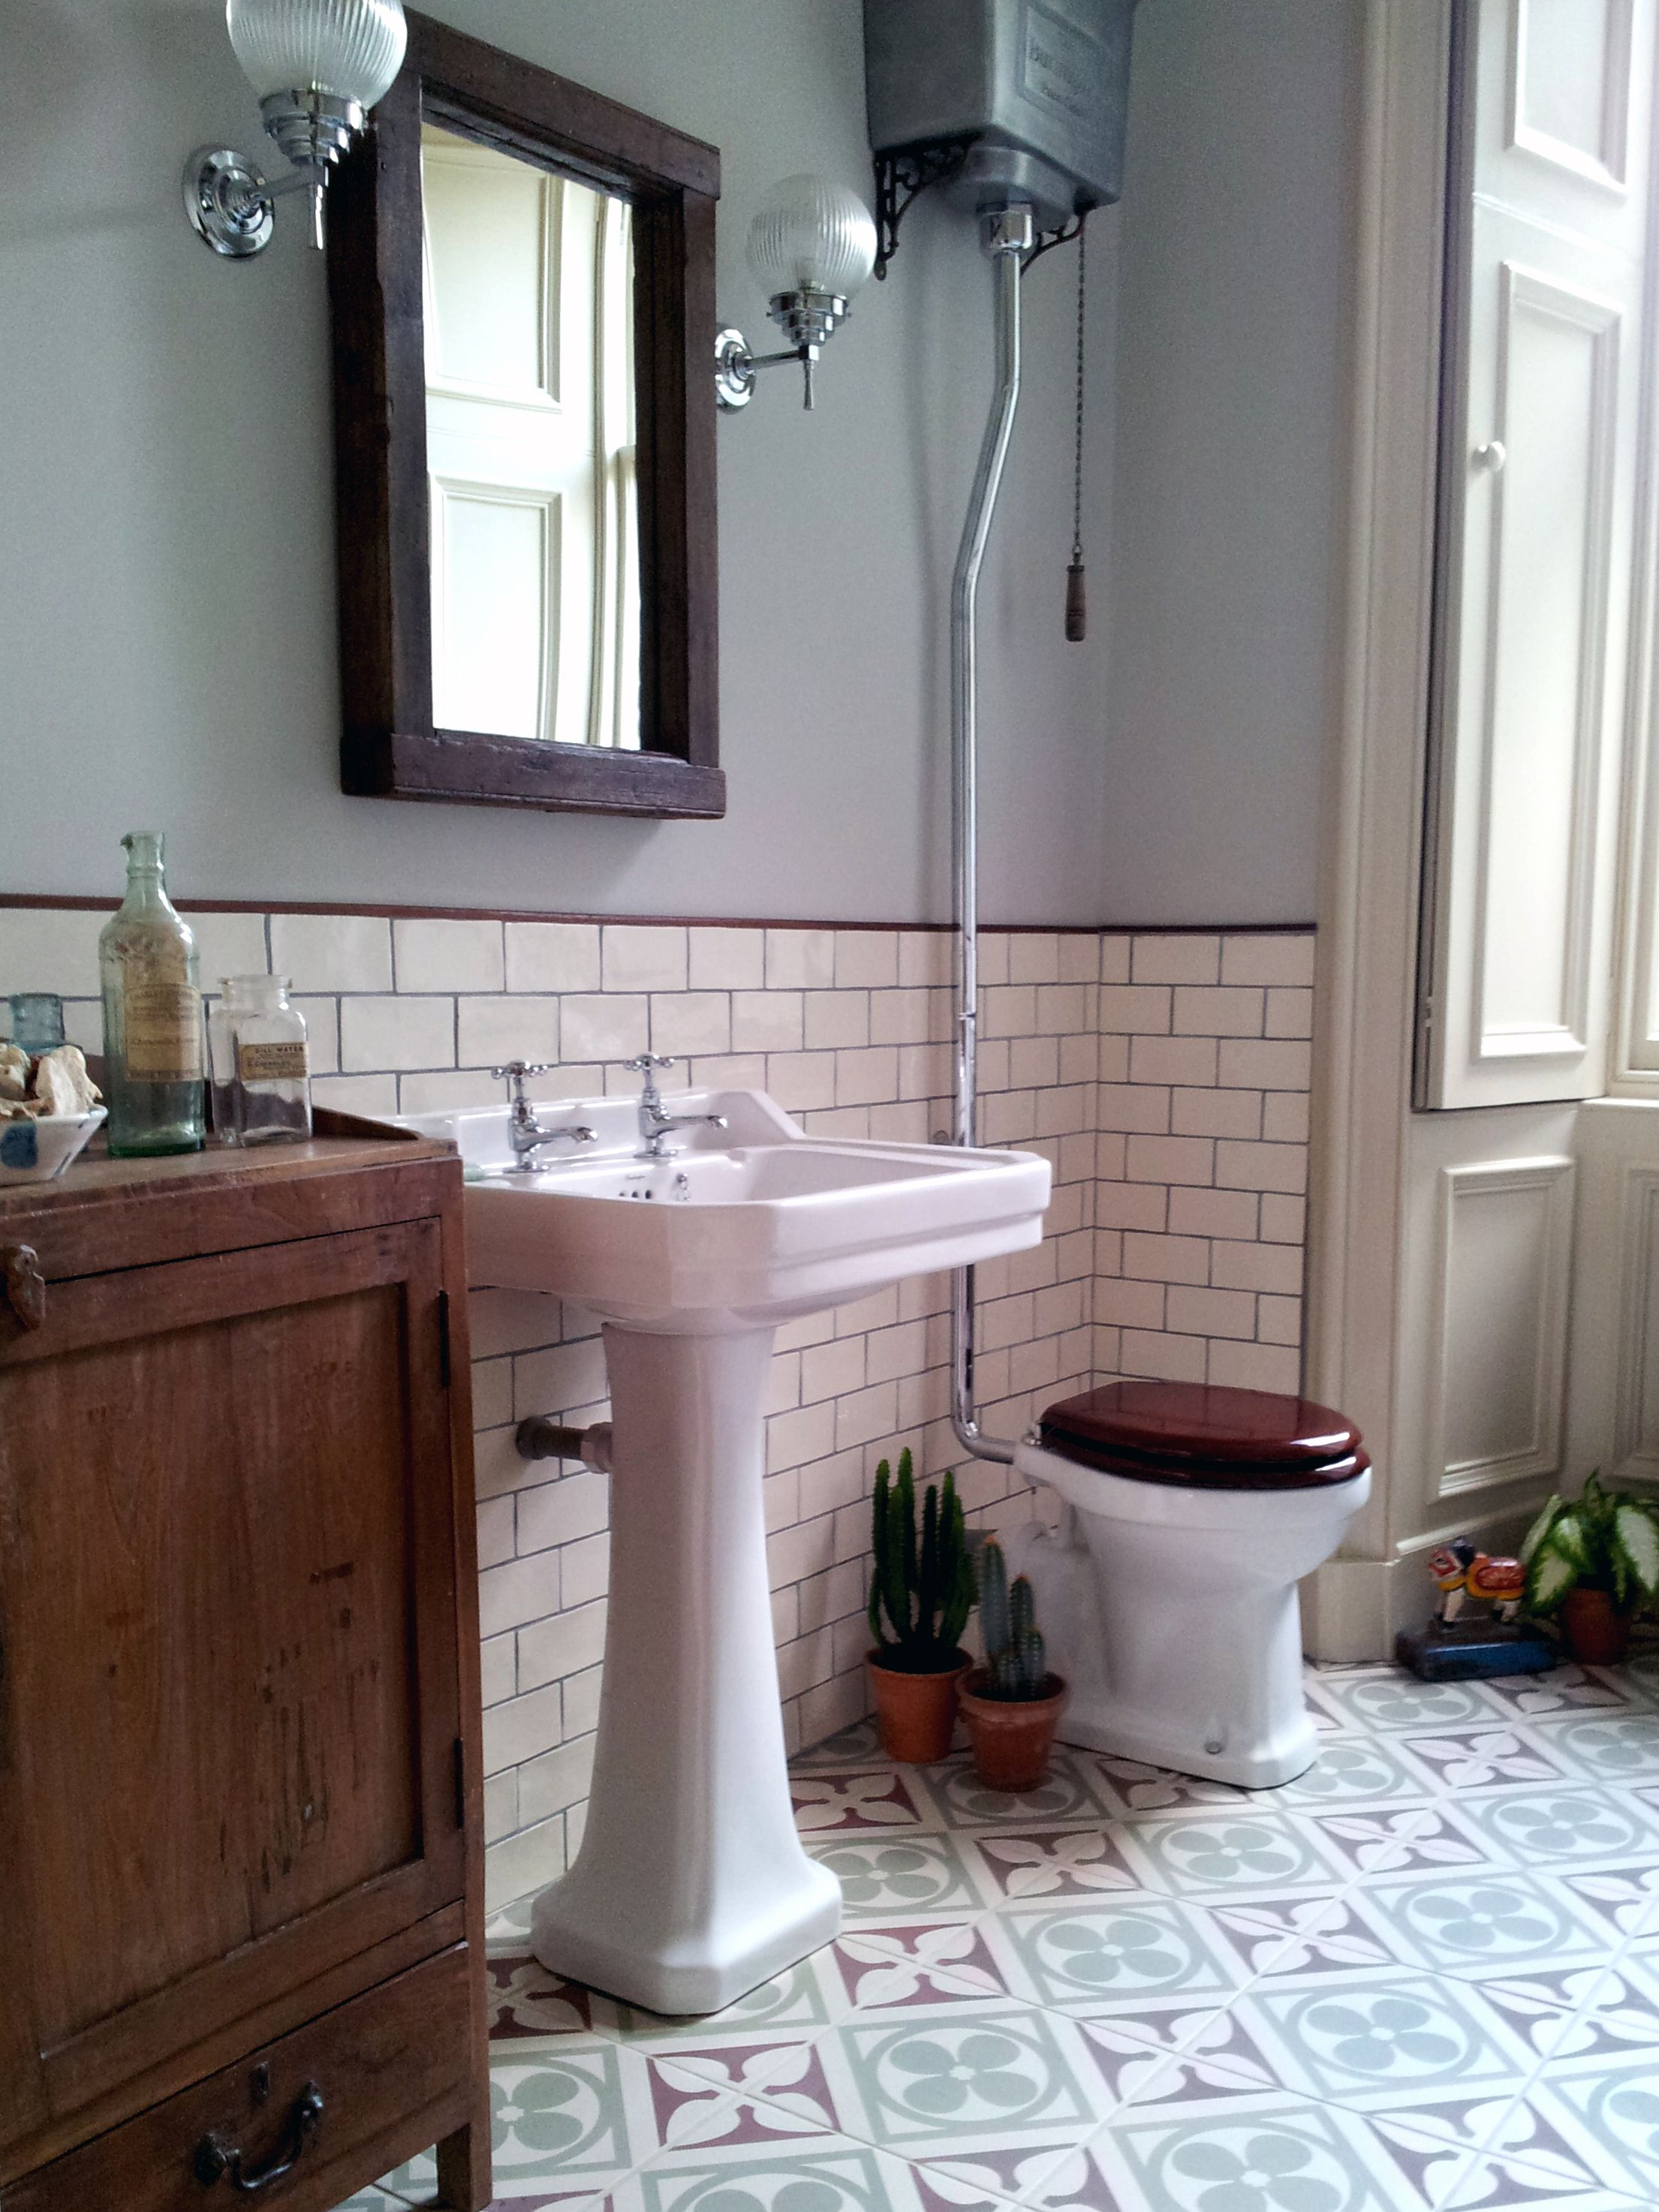 Charming Retro Flooring, Metro Tiles And A High Level Cistern Give This Bathroom A  Beautiful Traditional Look.